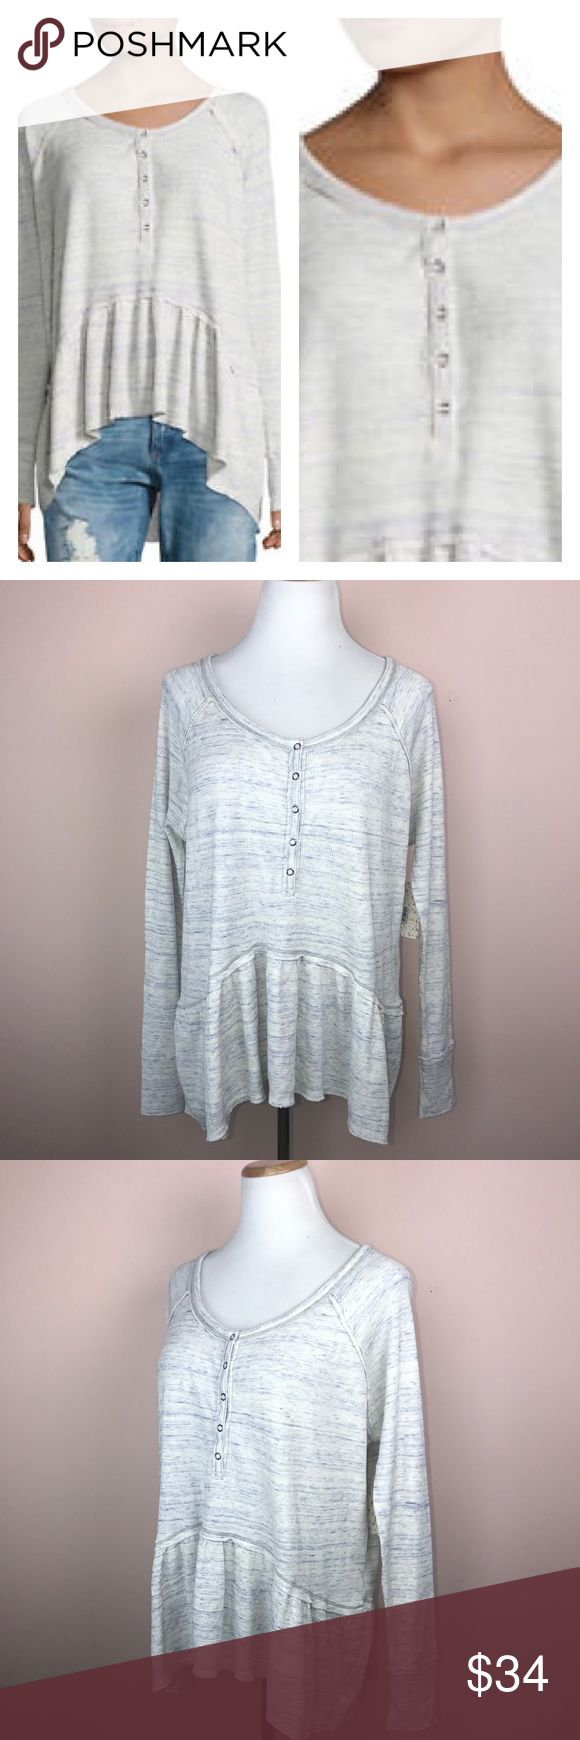 """Free People Top Size Medium Ivory Peplum Coastline This listing is for a Free People Top Size Medium Ivory Coastline Peplum Long Sleeve.  armpit to armpit 25 1/2"""" length 24""""-27"""" (longer in back) 100% cotton machine wash cold, tumble dry low top modeled on a size 6/8 dress form Top will be delivered gently steamed and wrapped in tissue.  SKU: 0917-FOX917-1096 Free People Tops"""